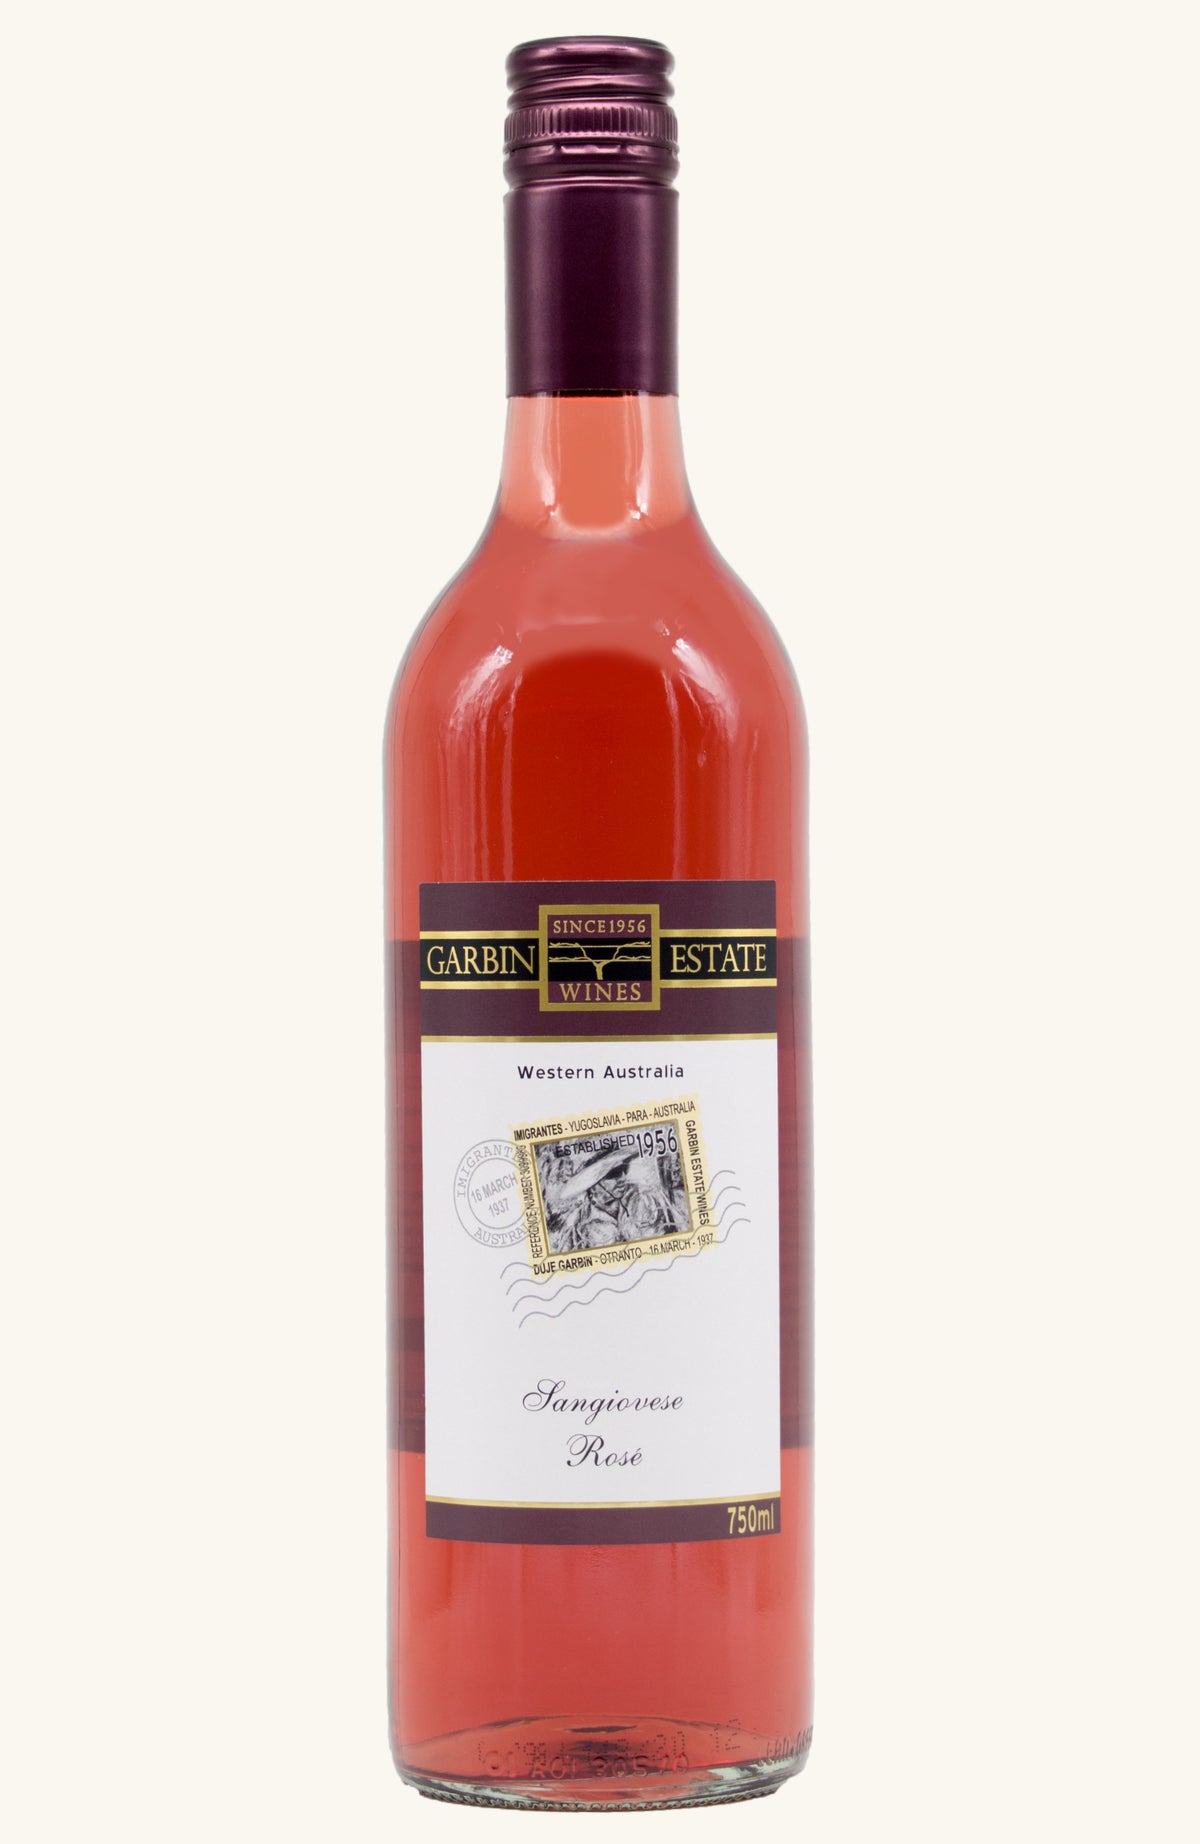 Garbin Estate Wines 2020 Sangiovese Rose